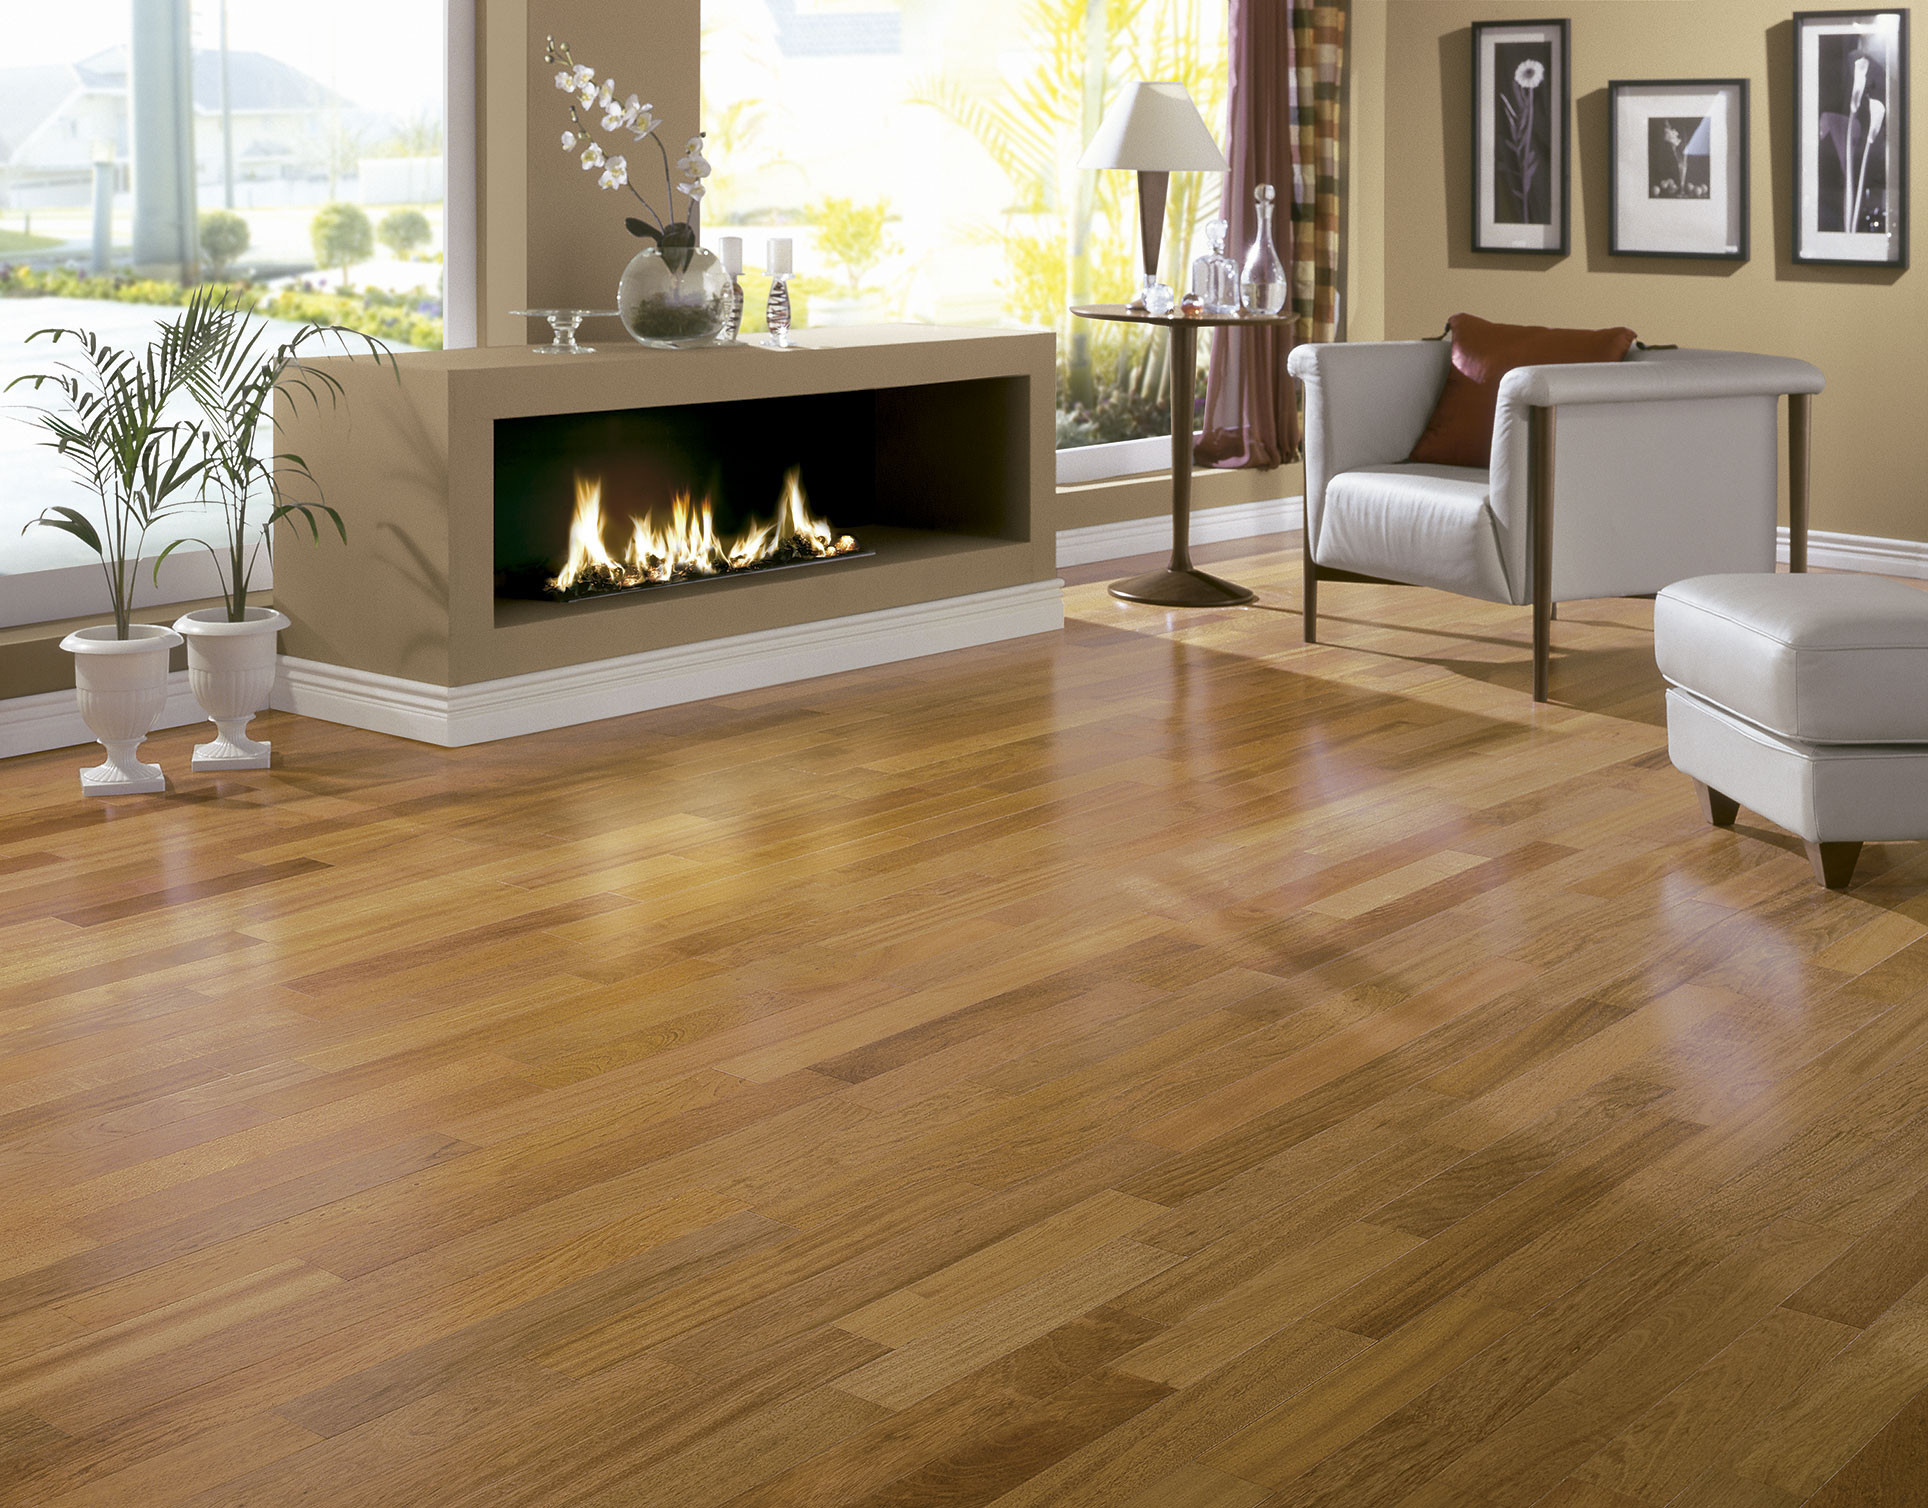 hardwood flooring on sale near me of forest accents wood floor lovely engaging discount hardwood flooring with forest accents wood floor lovely engaging discount hardwood flooring 5 where to buy inspirational 0d